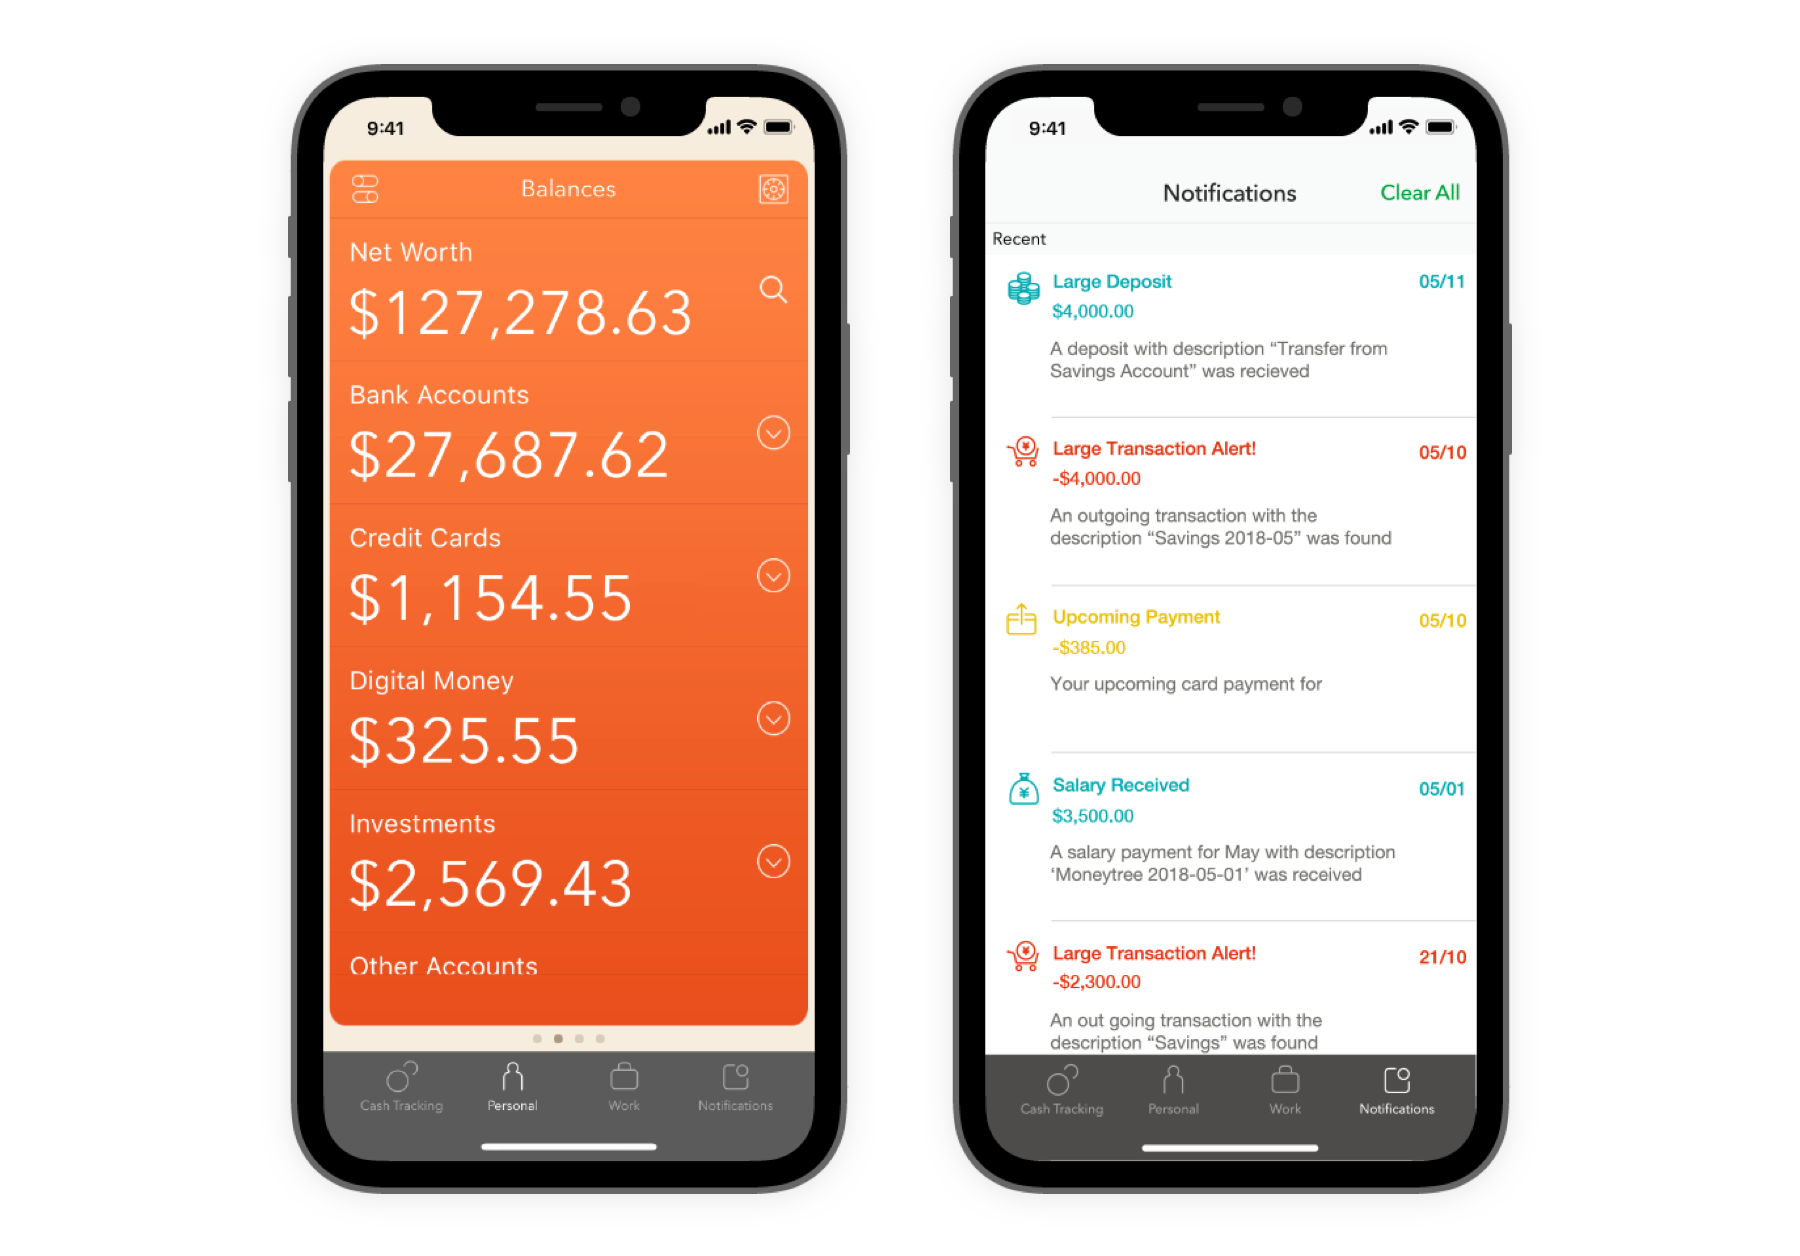 Views of the balances and notifications screens in the Moneytree app